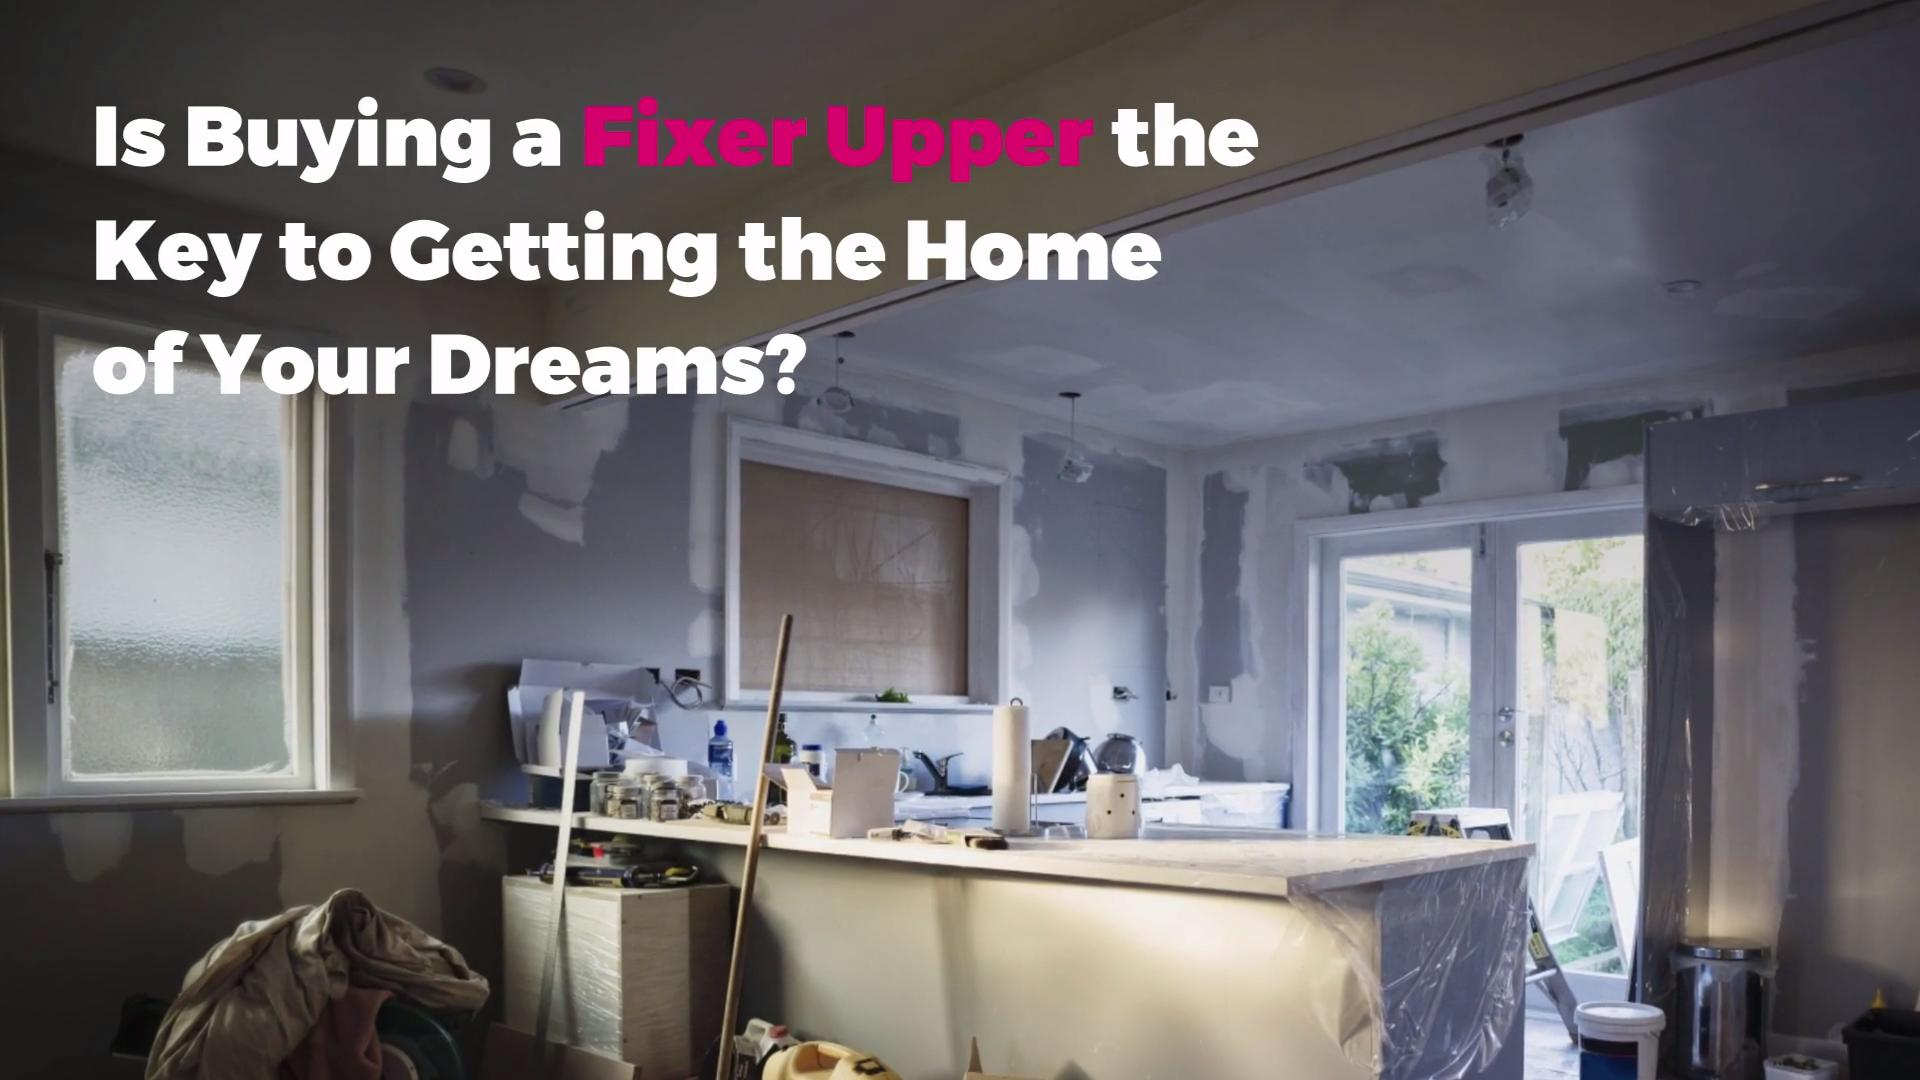 Is Buying a Fixer Upper the Key to Getting the Home of Your Dreams?